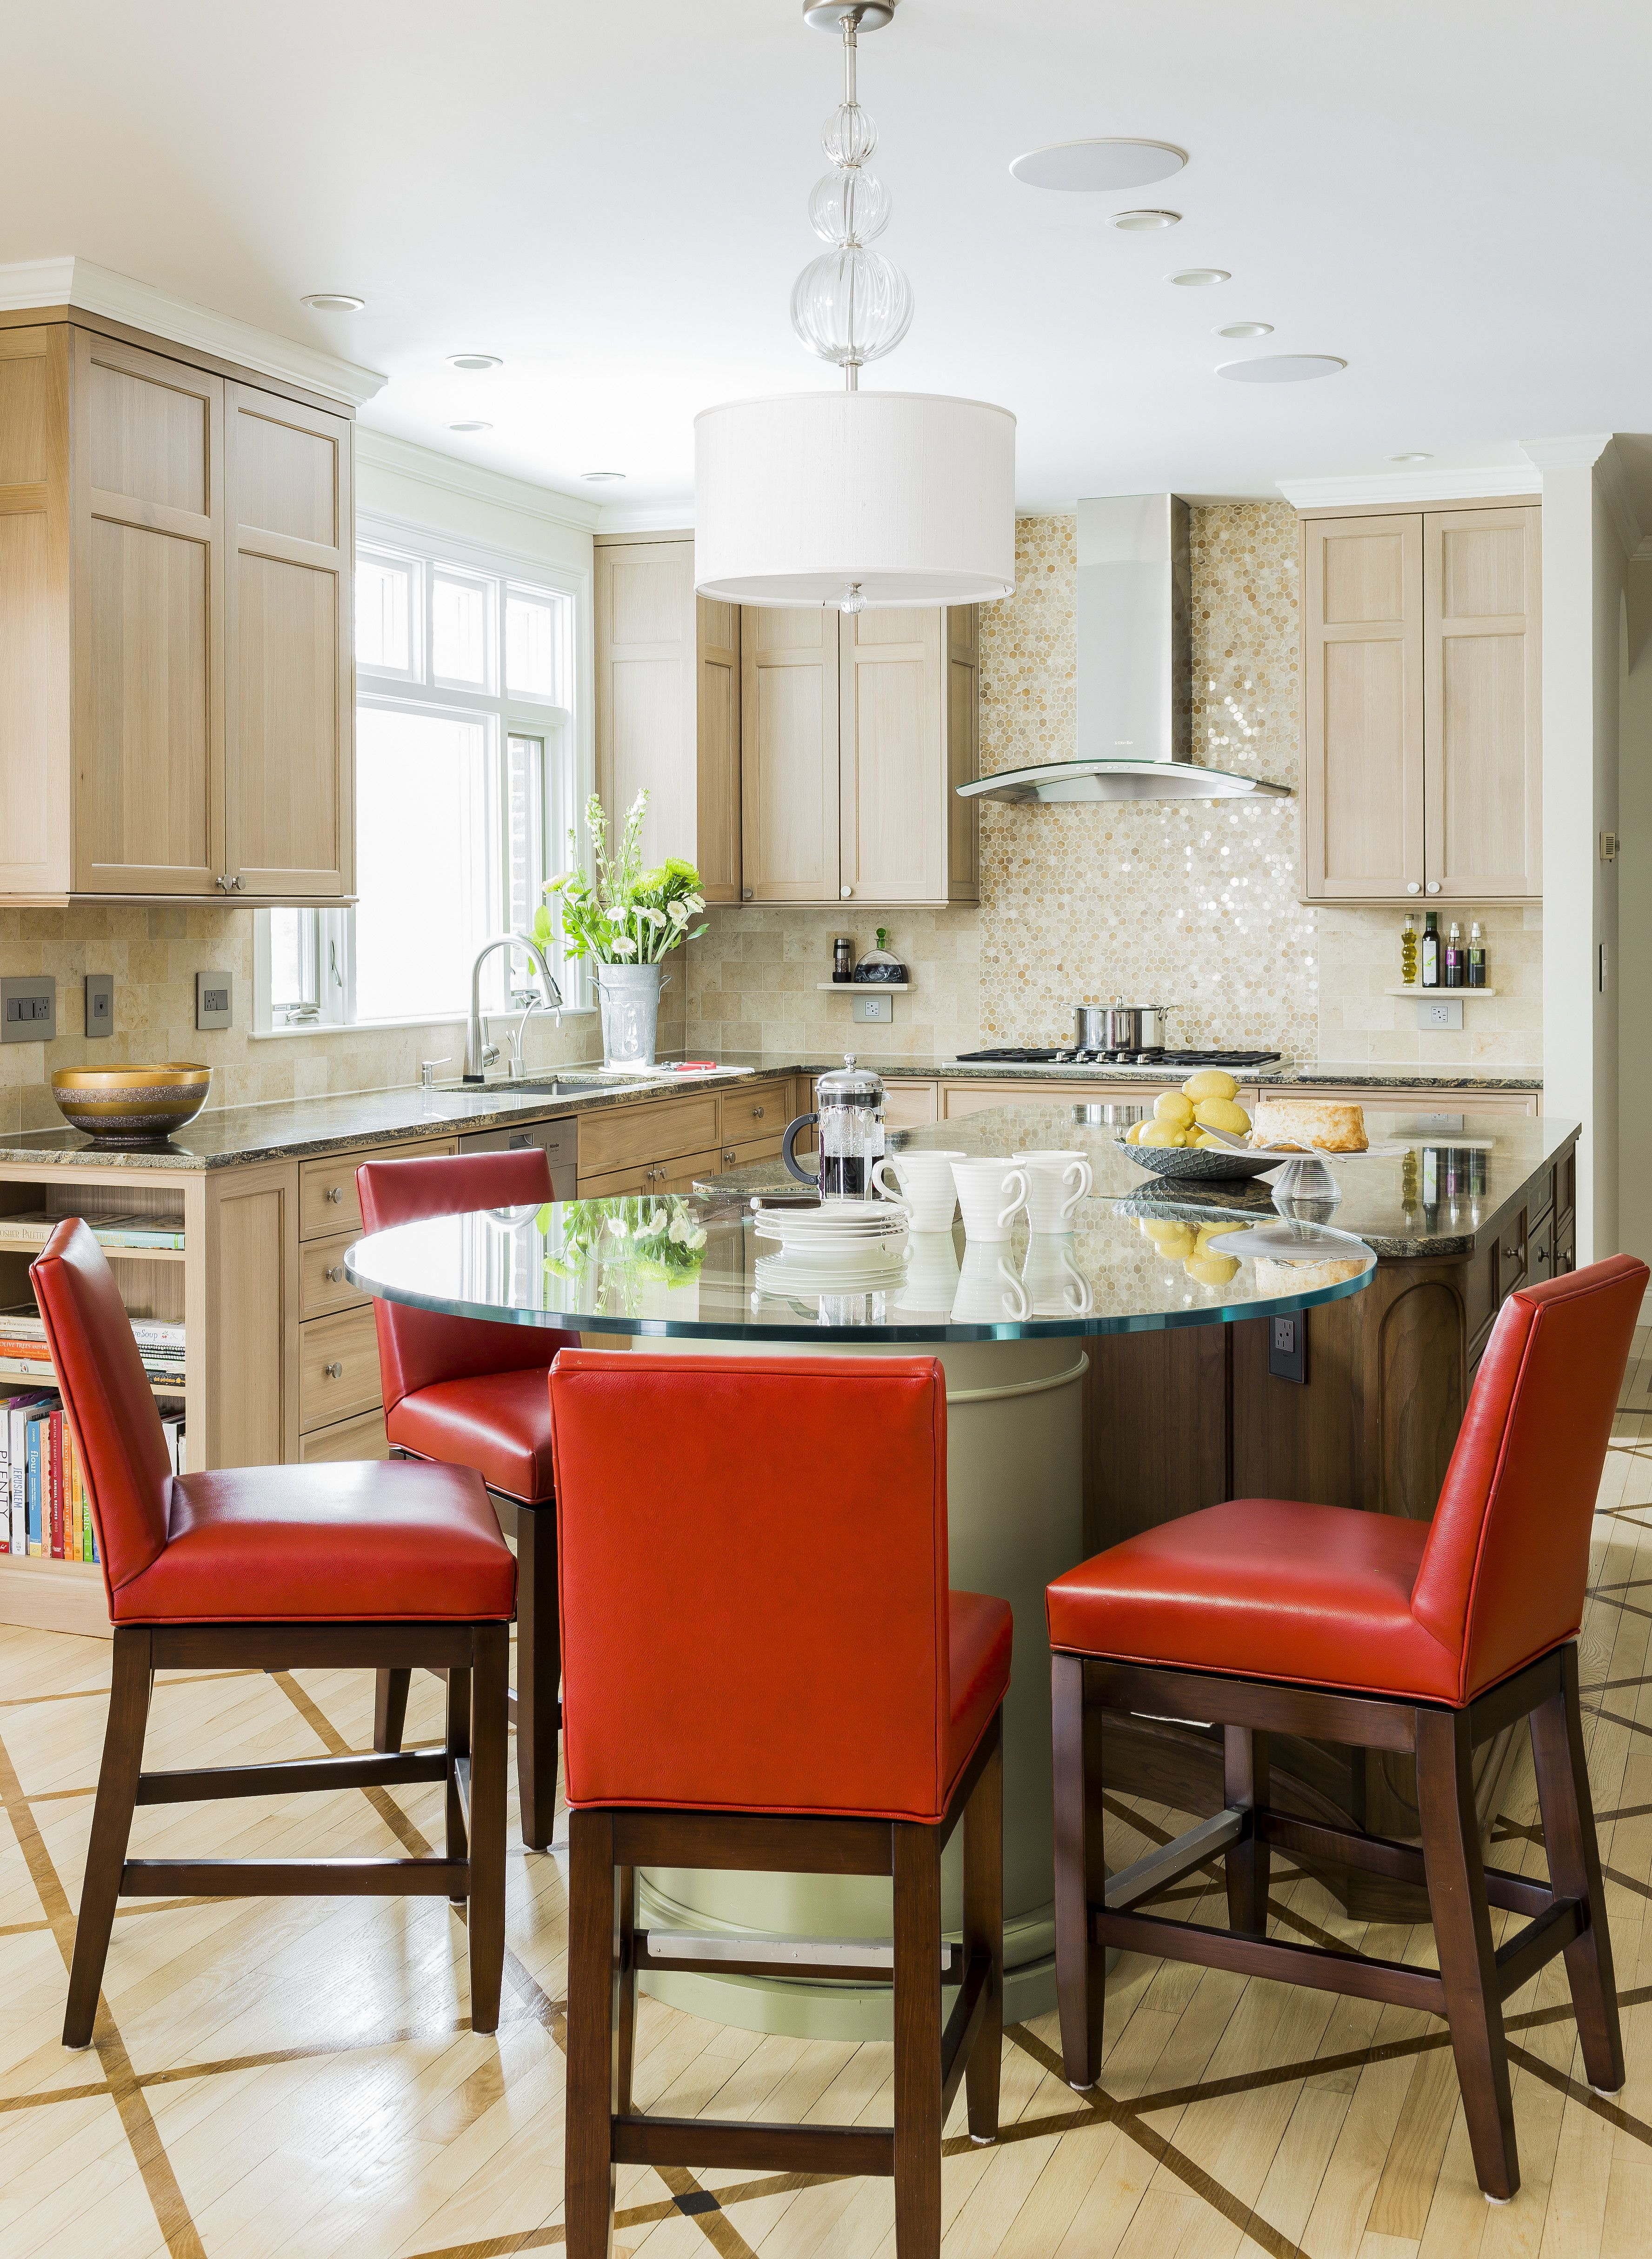 Kitchen Designers Boston Impressive Our Clients Requested A Kitchen That Would Be A Comfortable 2018